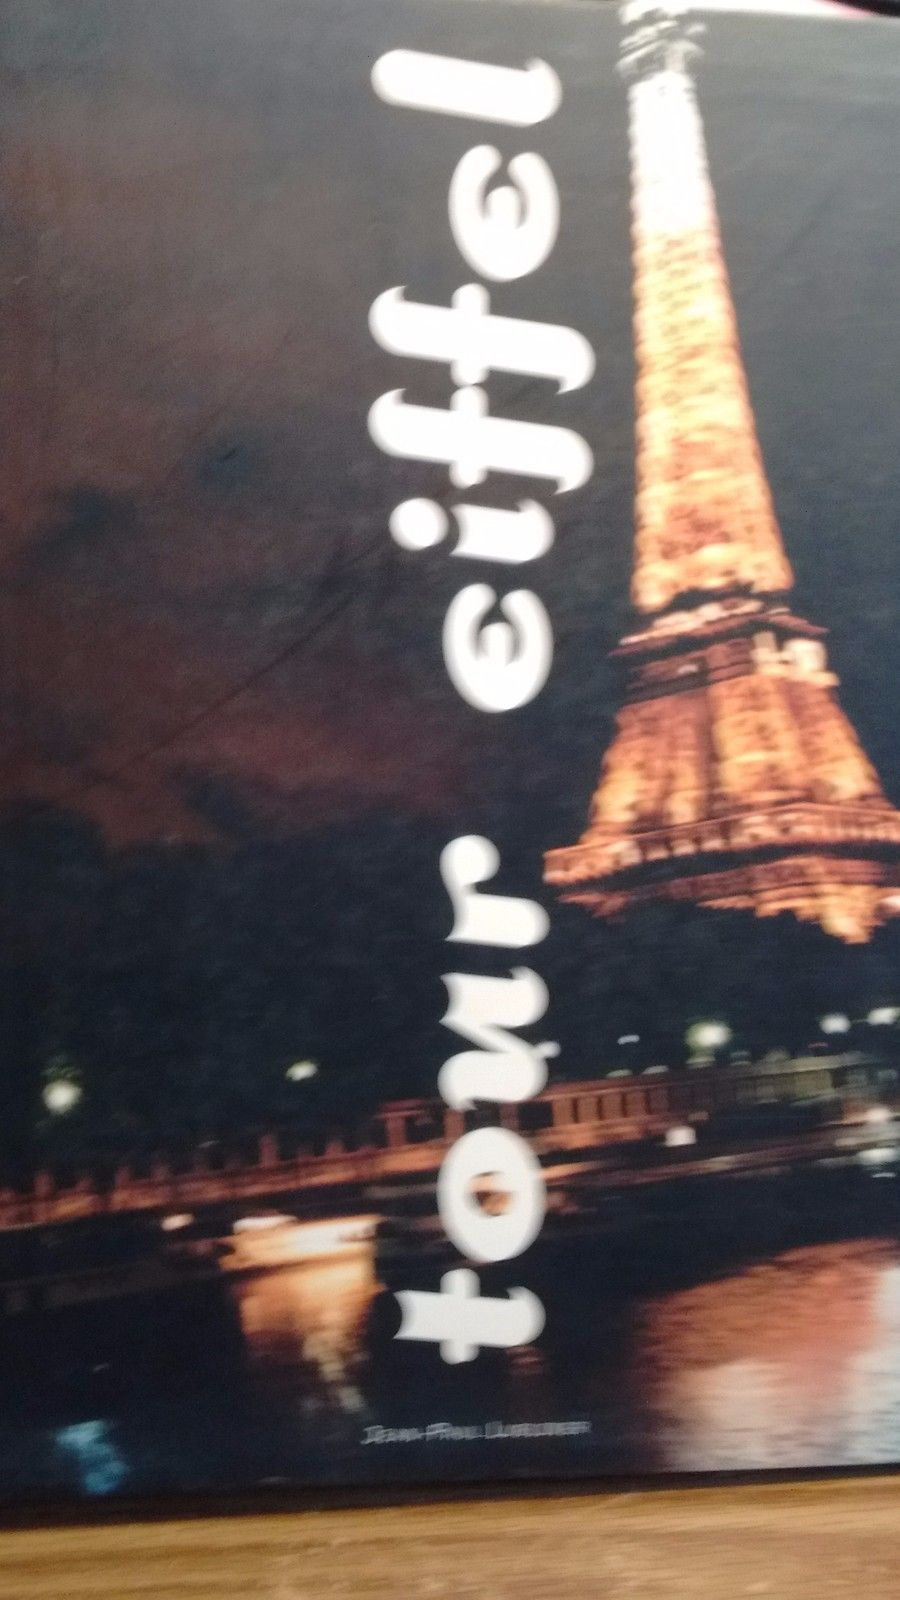 Tour Eiffel: Un Voyage Immobile by Jean-Paul Lubliner (2000, Book, Illustrated)